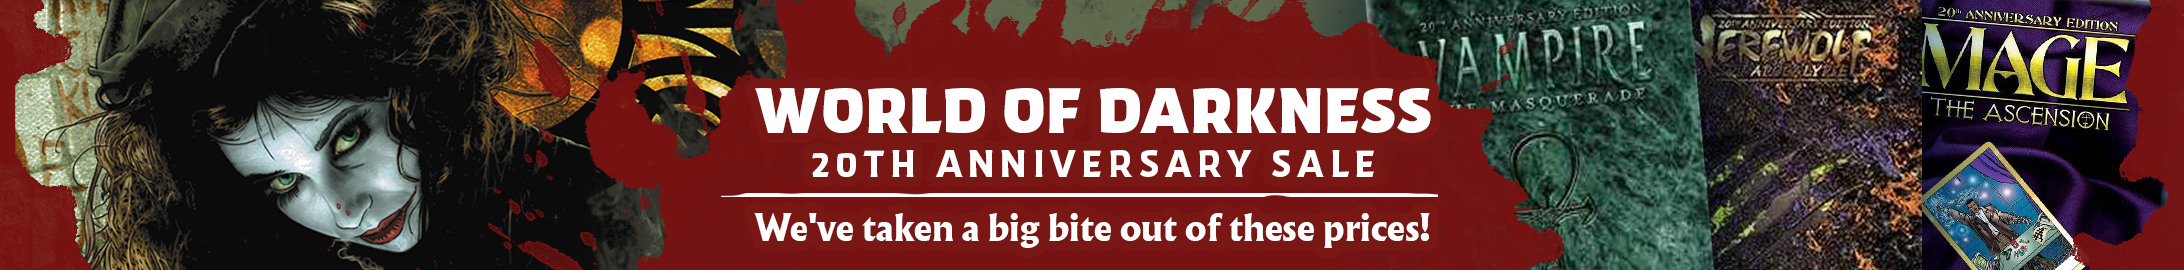 The World of Darkness 20th Anniversary Edition sale @ DriveThruRPG.com